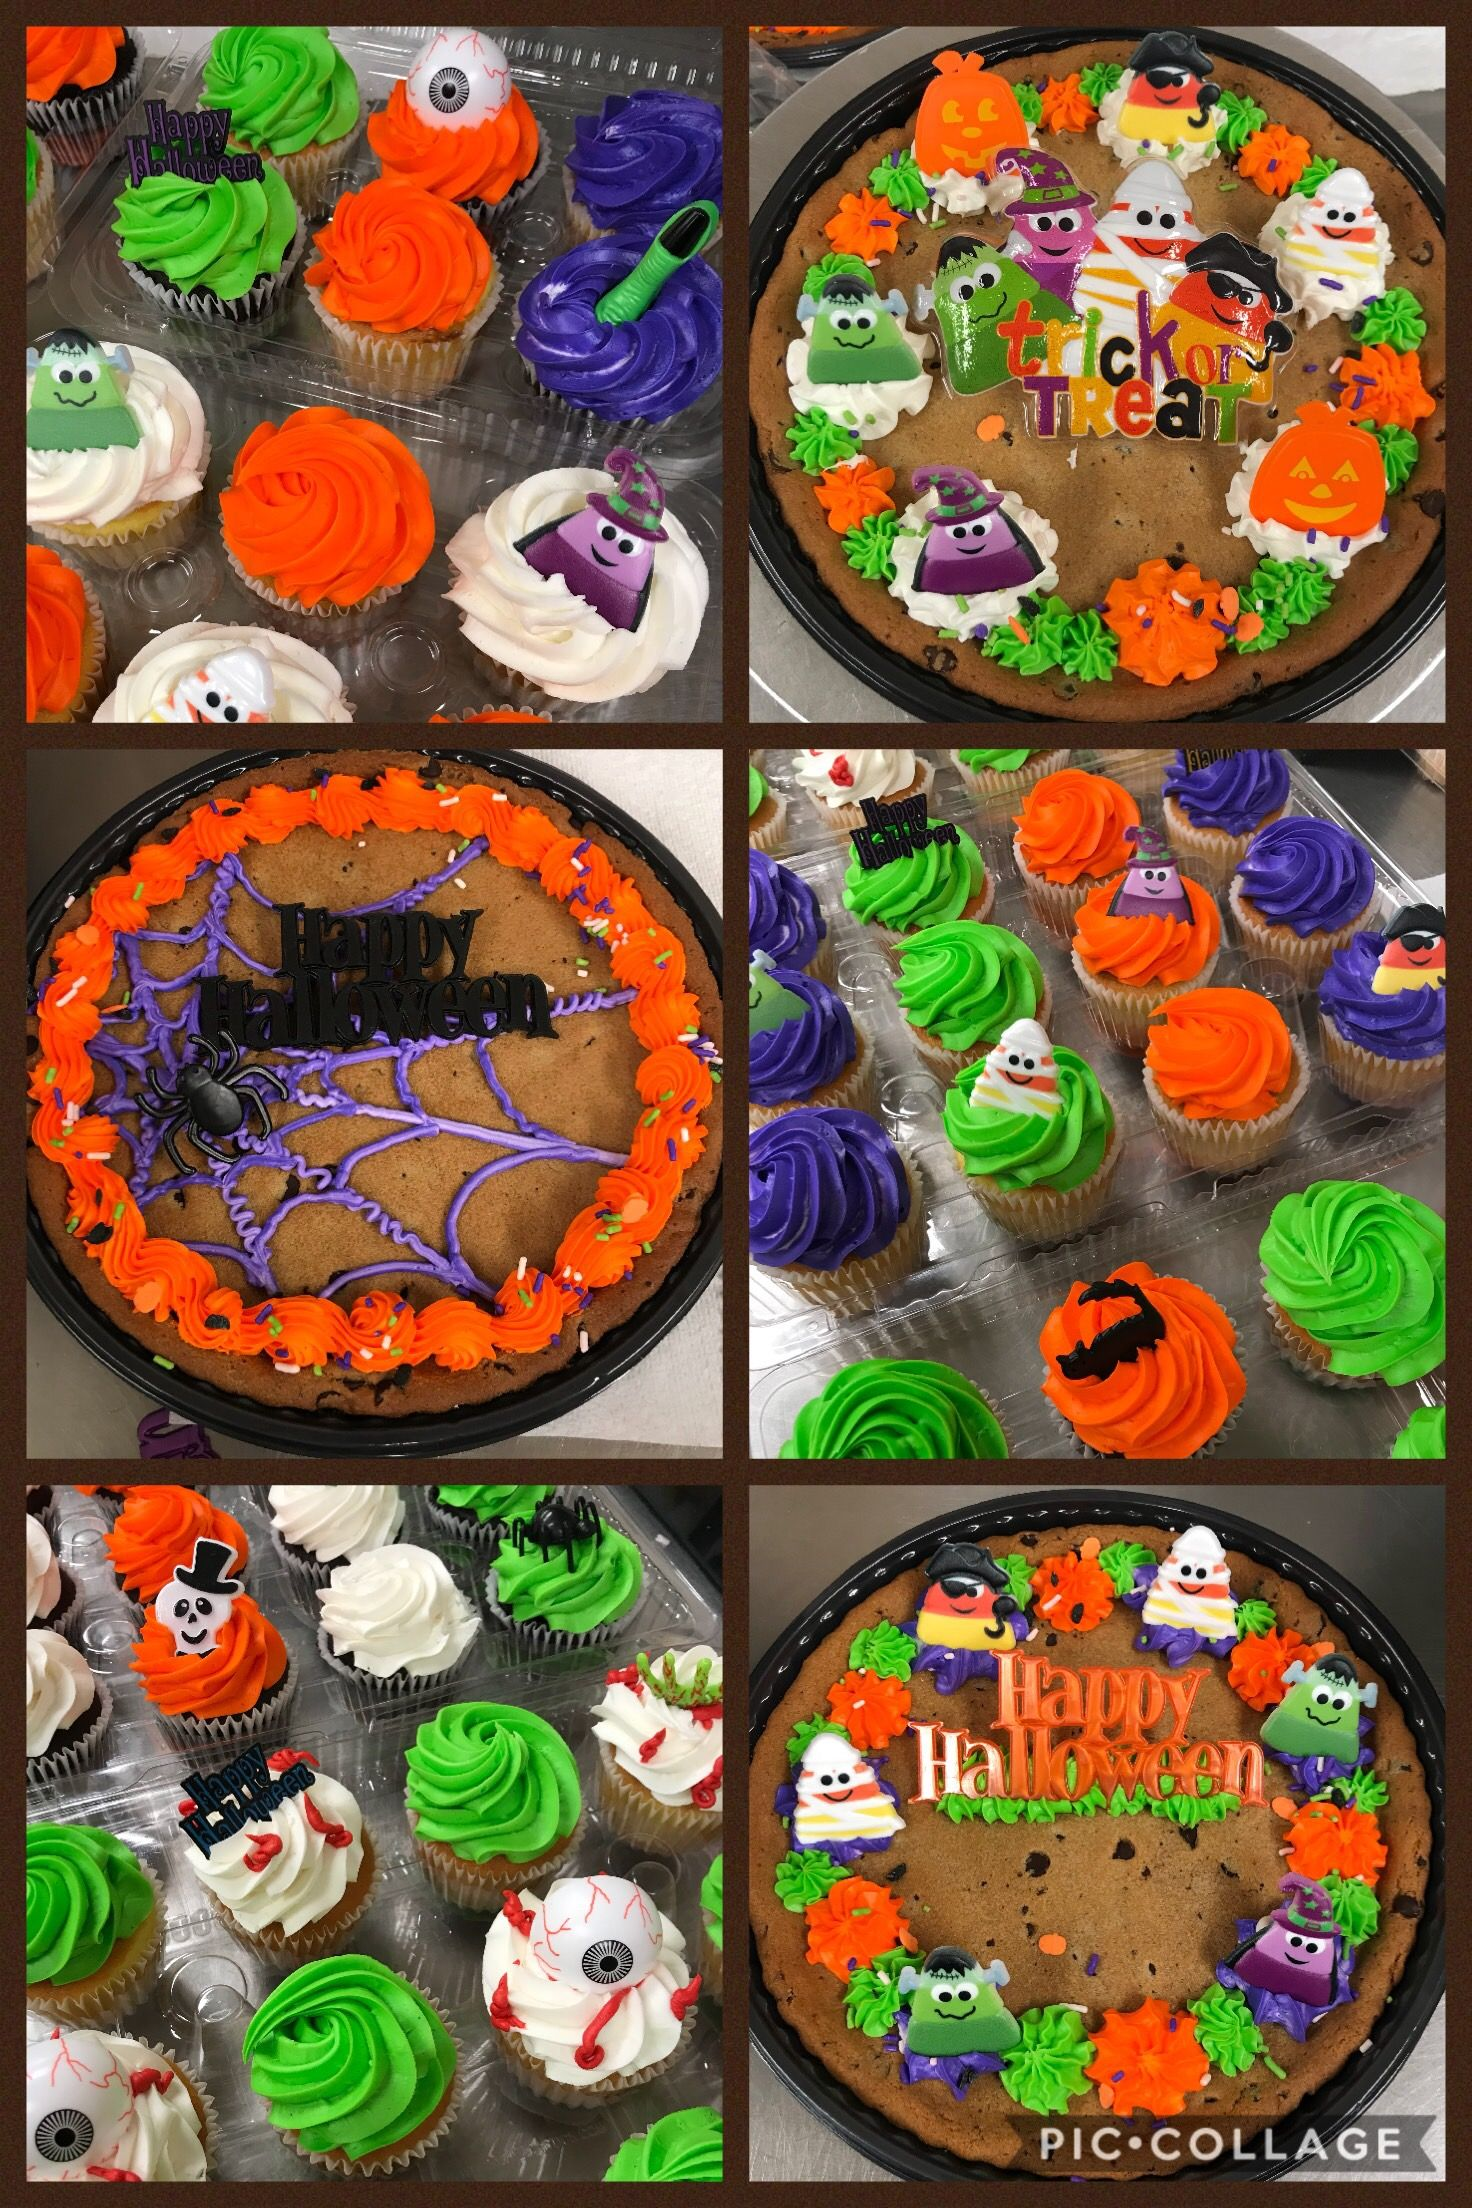 Halloween Cakes 2017 With Images Halloween Cake Decorating